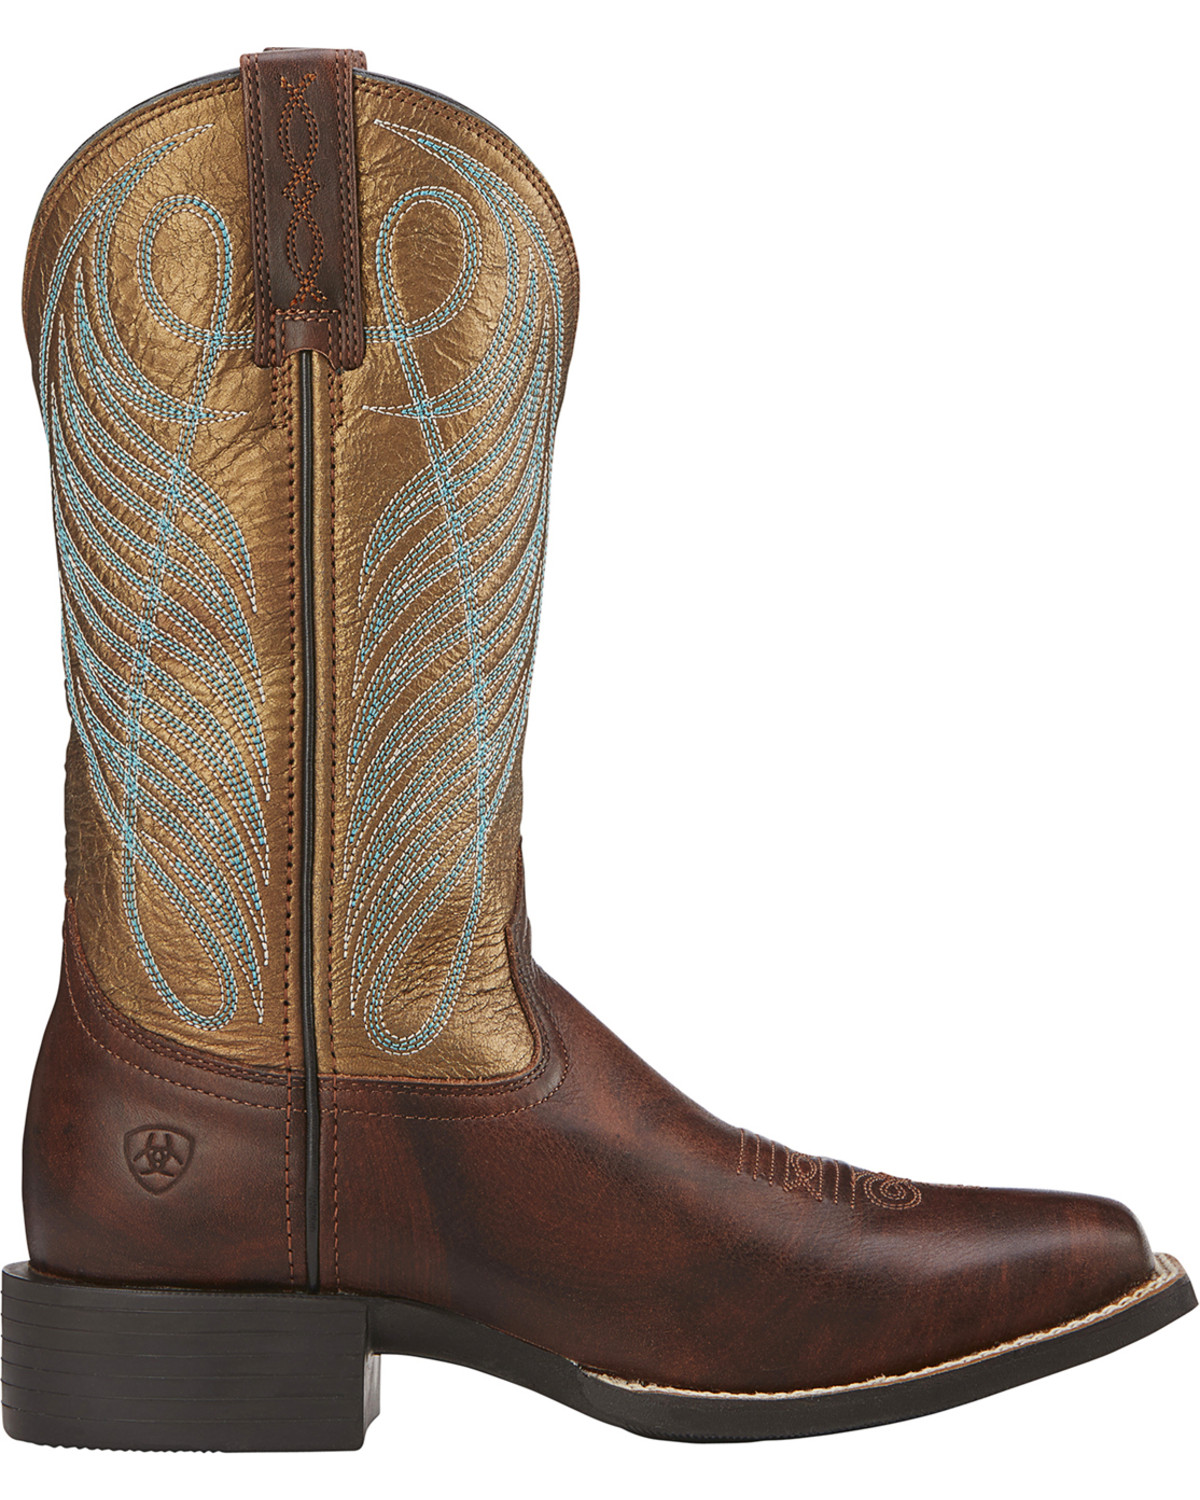 Ariat Women's Round Up Cowgirl Boots -Square Toe | Sheplers